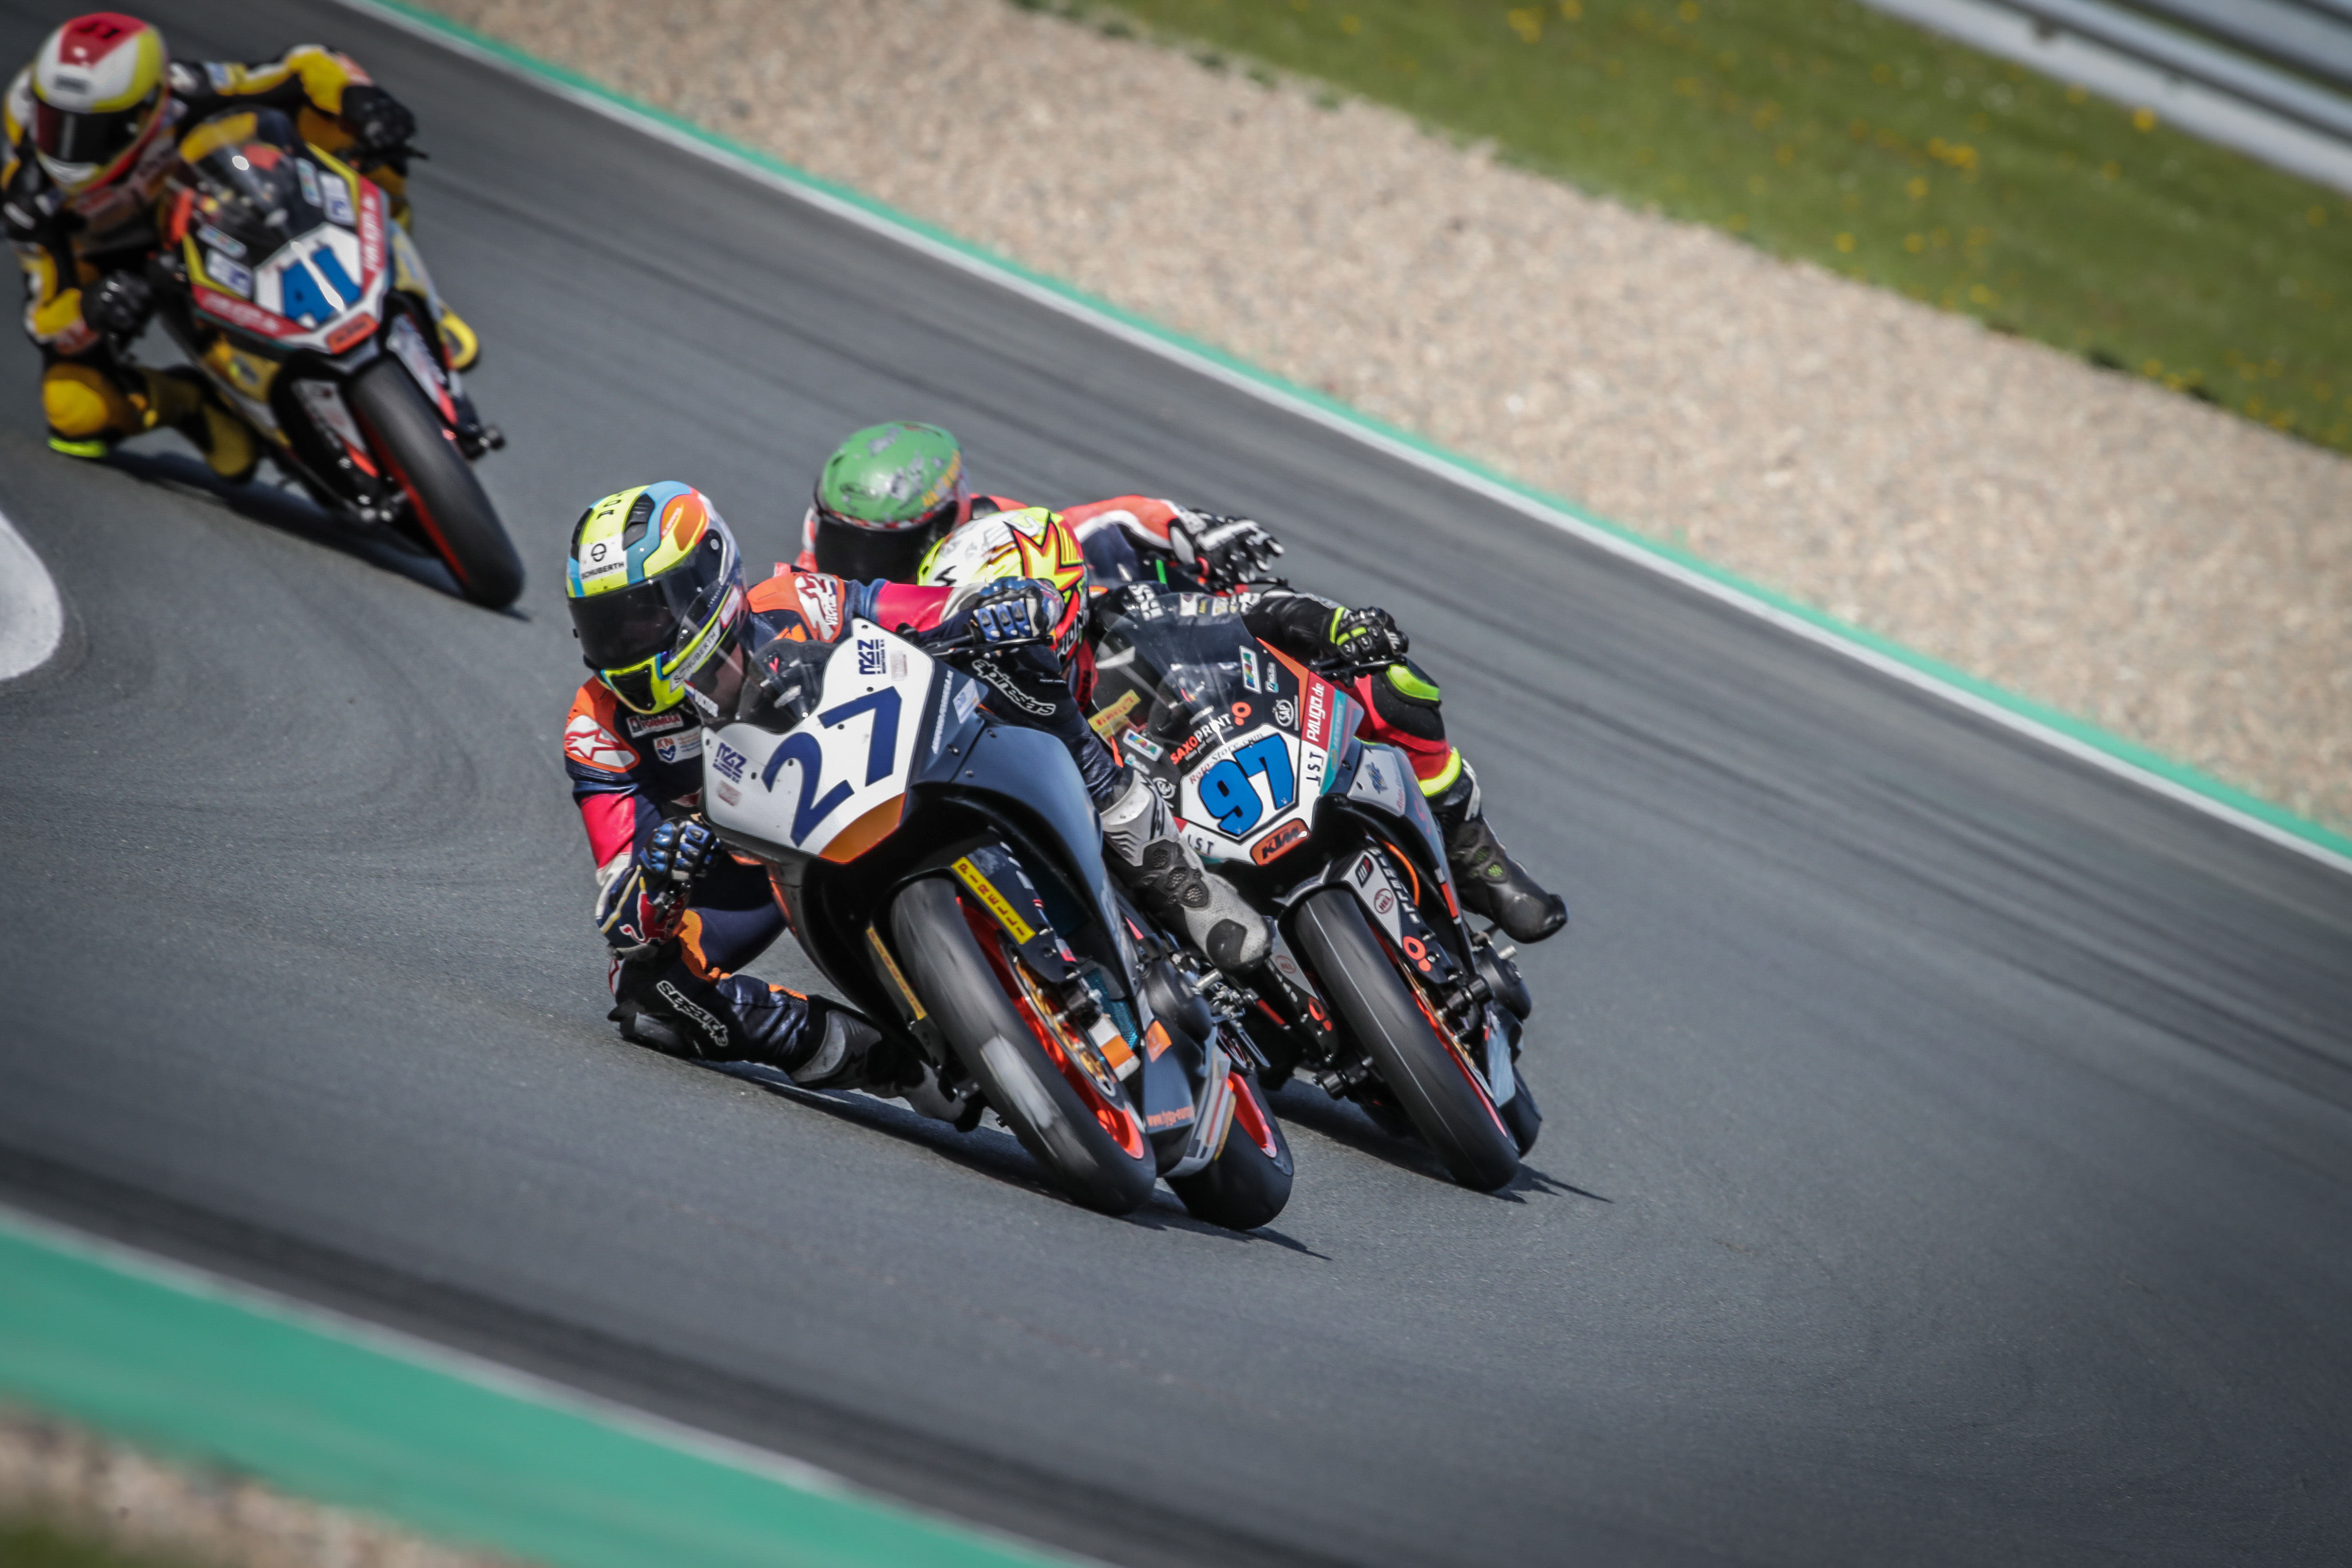 IDM Supersport 300 – IDM-Neuling Steeman besiegt deutsche Top-Piloten